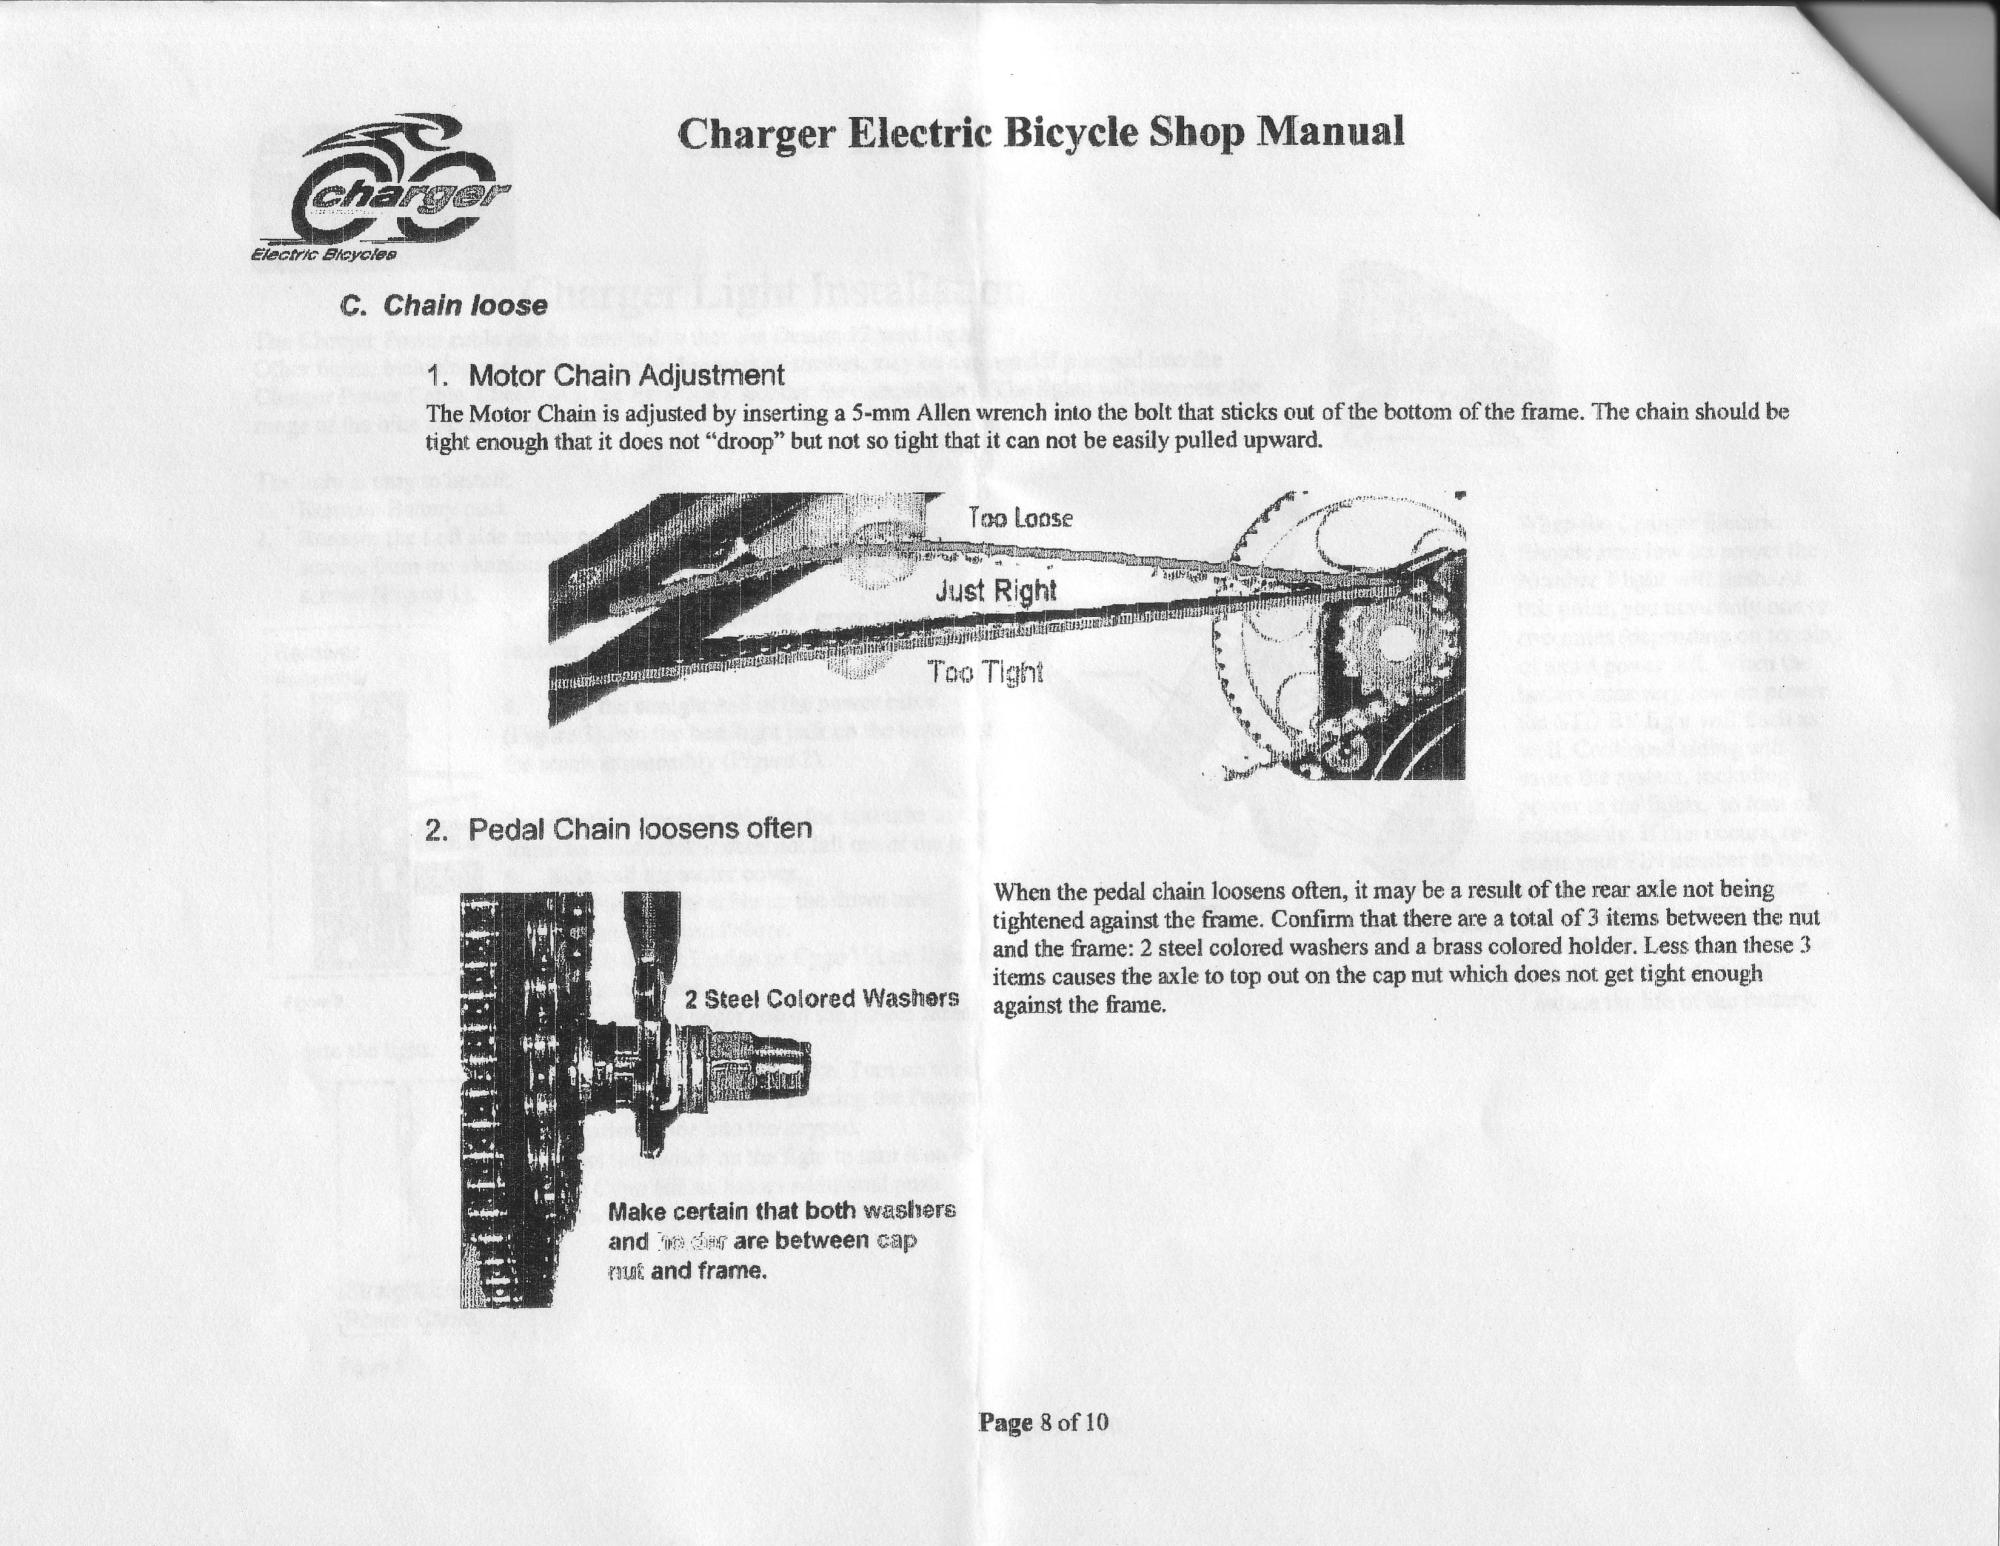 hight resolution of  wiring diagram for battery replacement torque sensor replacement motor chain adjustment